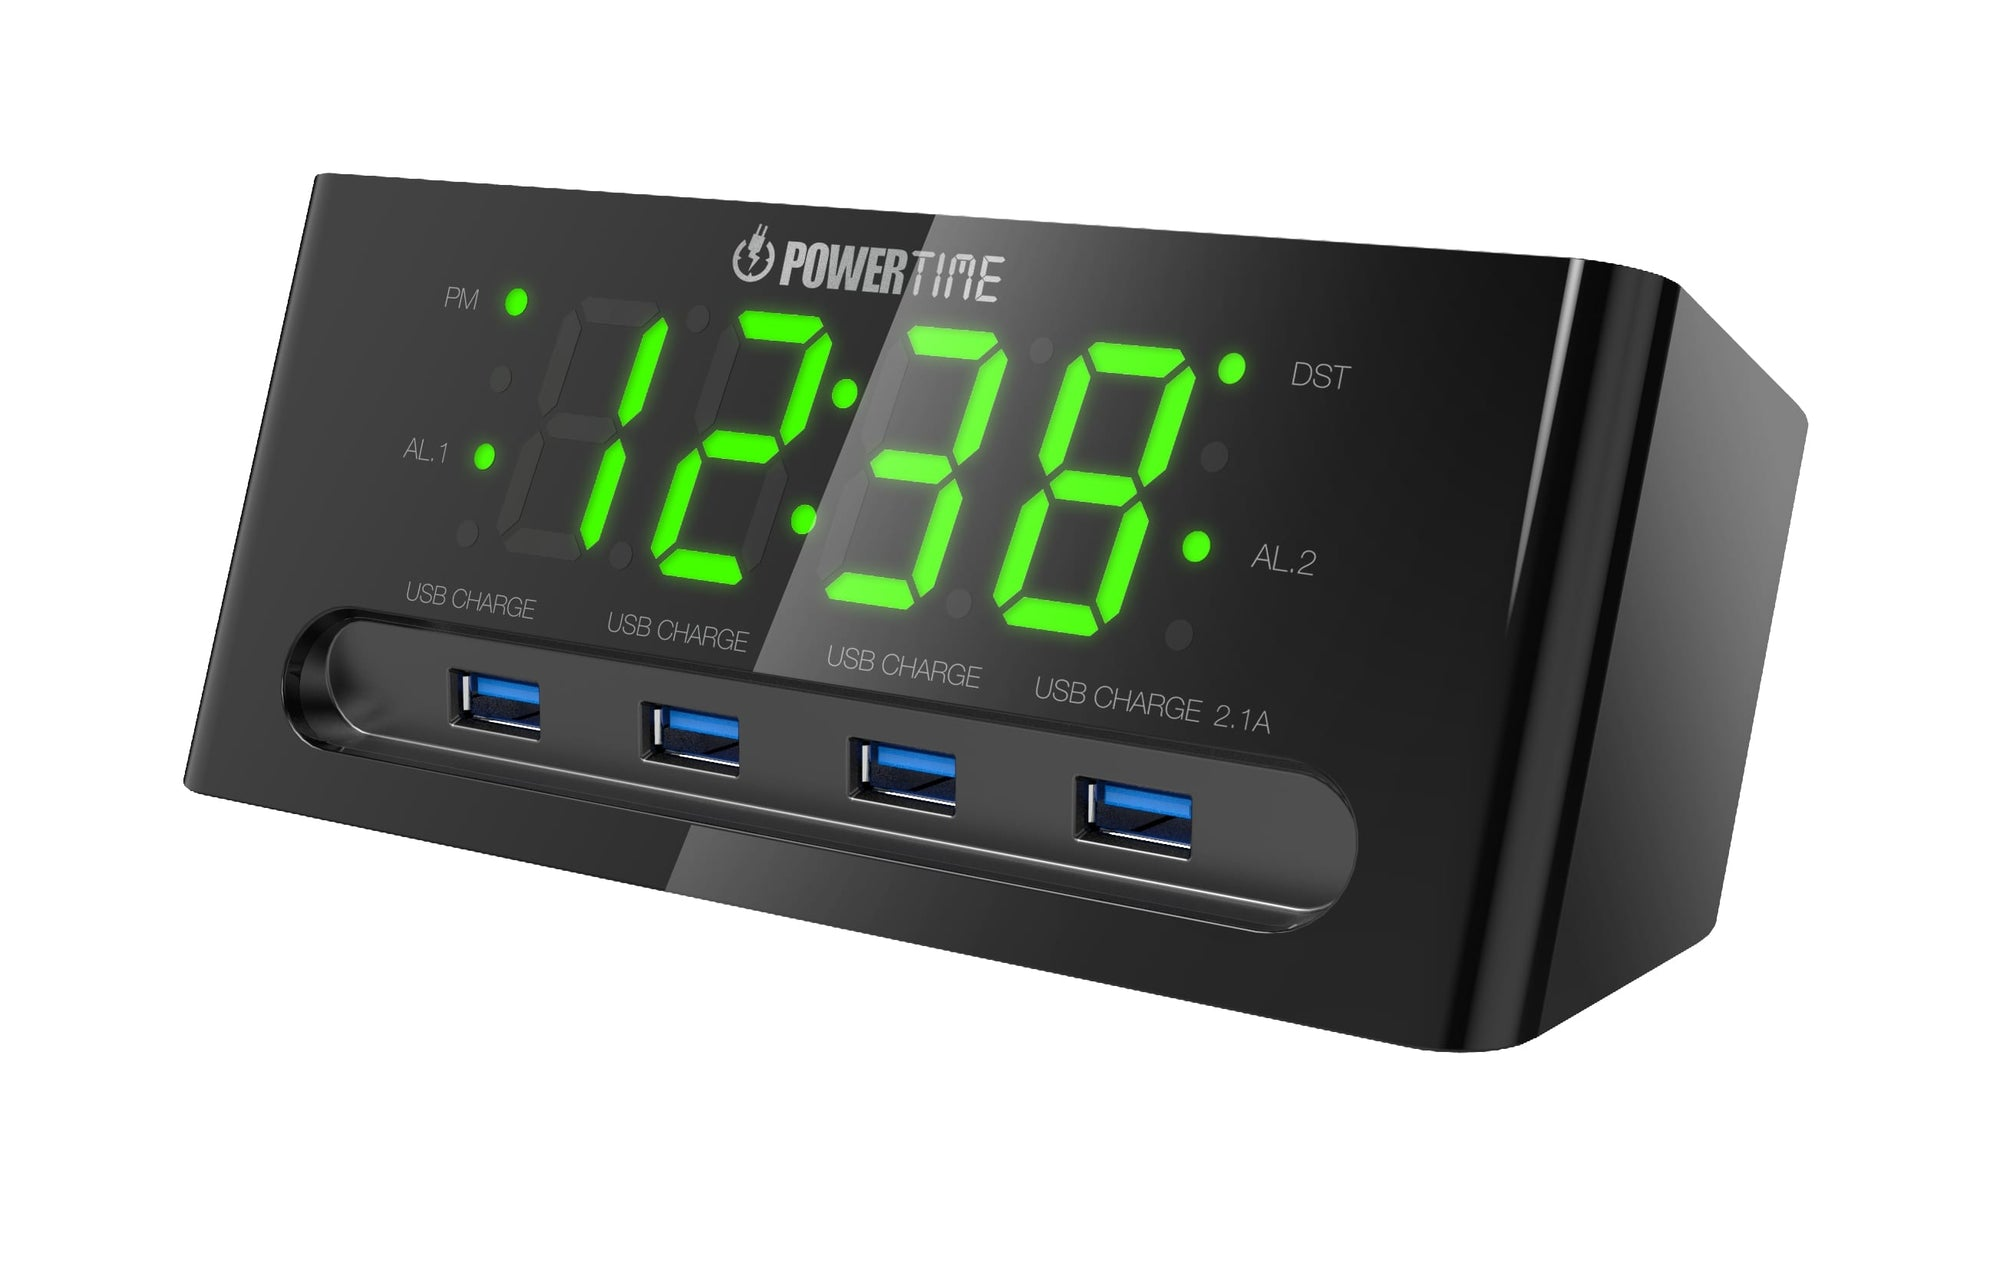 Beare Inteliset Digital Alarm Clock Wit 4 Usb Ports (Green LED) - CT24G